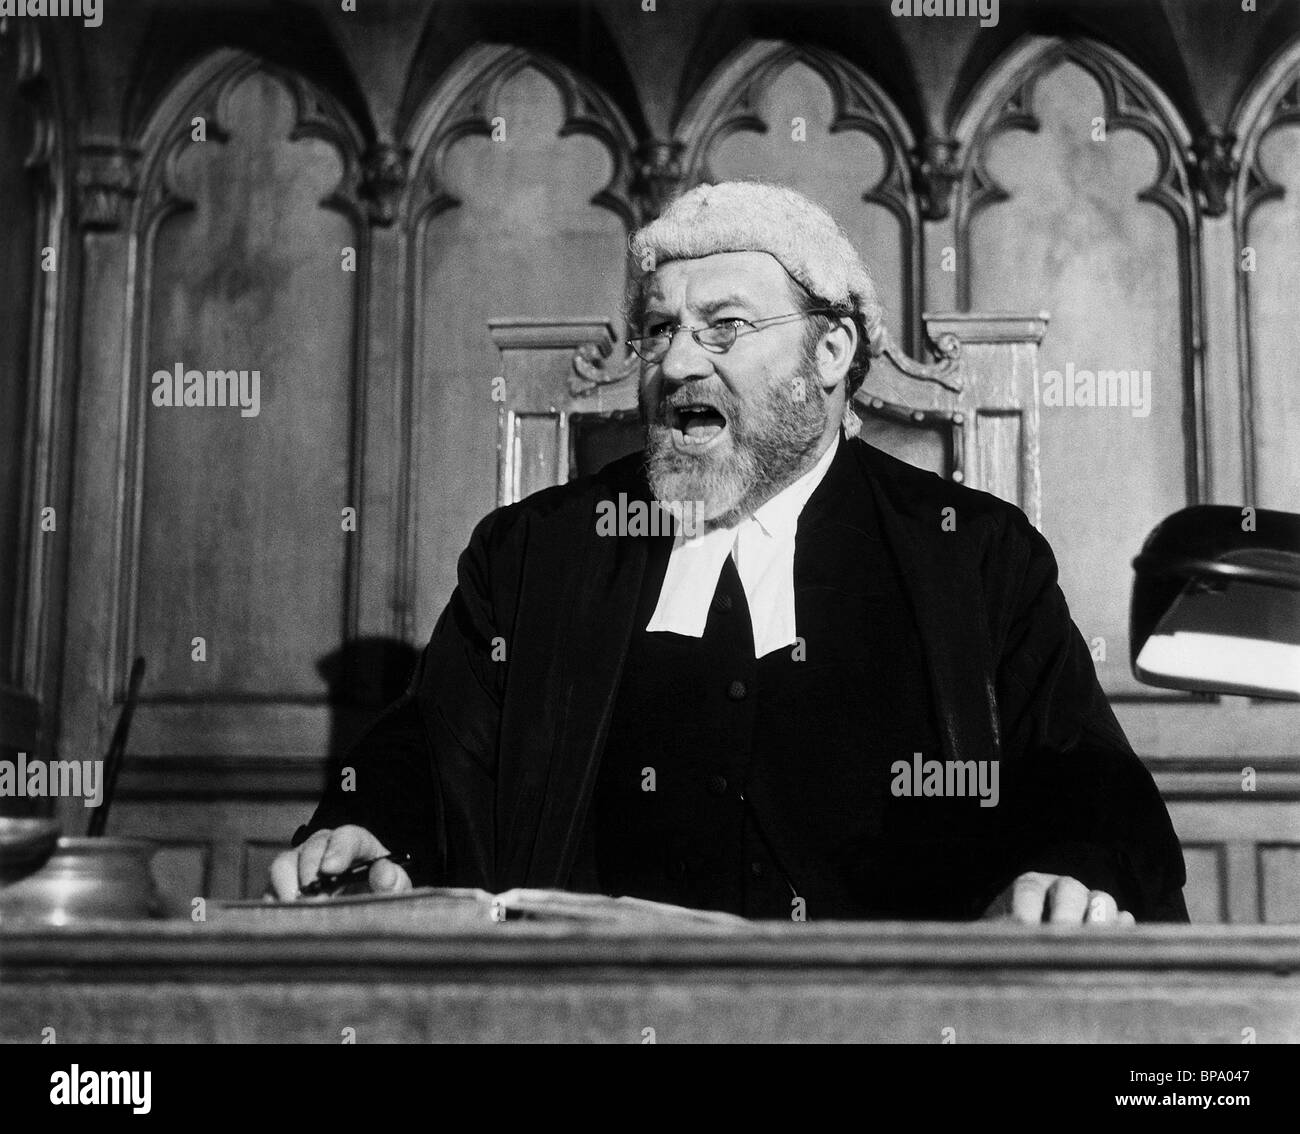 JAMES ROBERTSON JUSTICE A PAIR OF BRIEFS (1962) - Stock Image